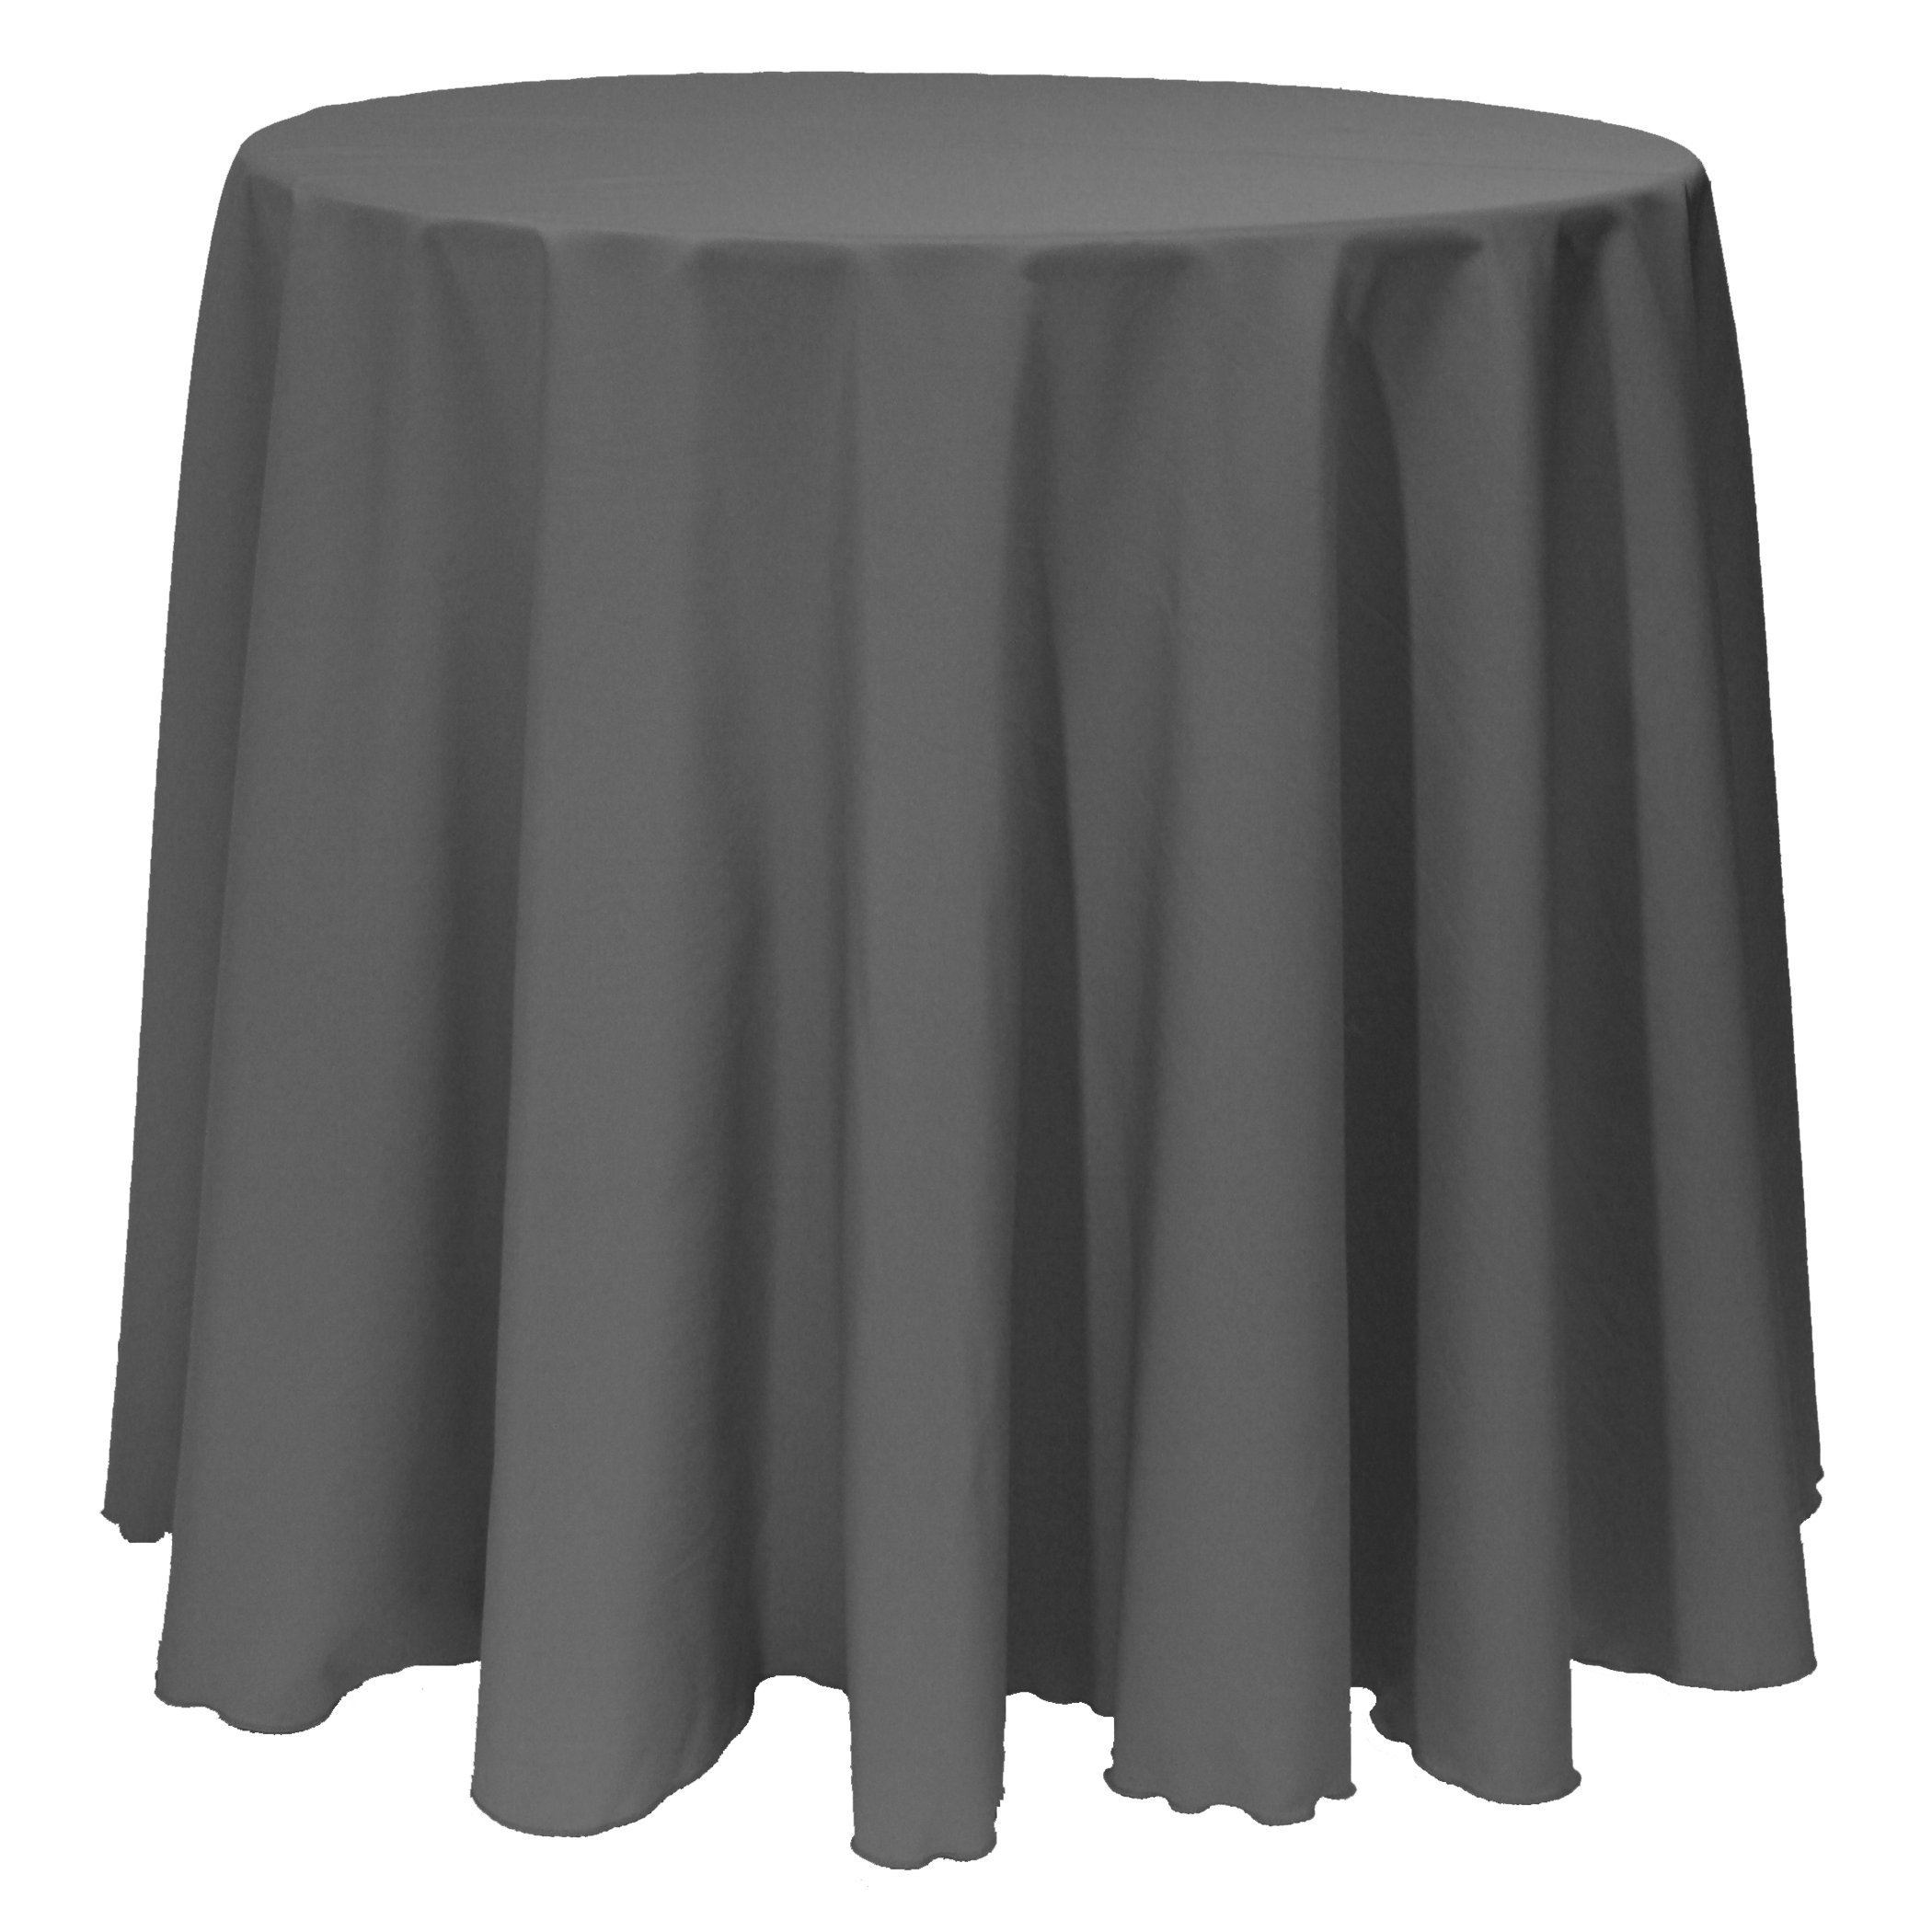 Ultimate Textile (10 Pack) 108-Inch Round Polyester Linen Tablecloth - for Wedding, Restaurant or Banquet use, Charcoal Grey by Ultimate Textile